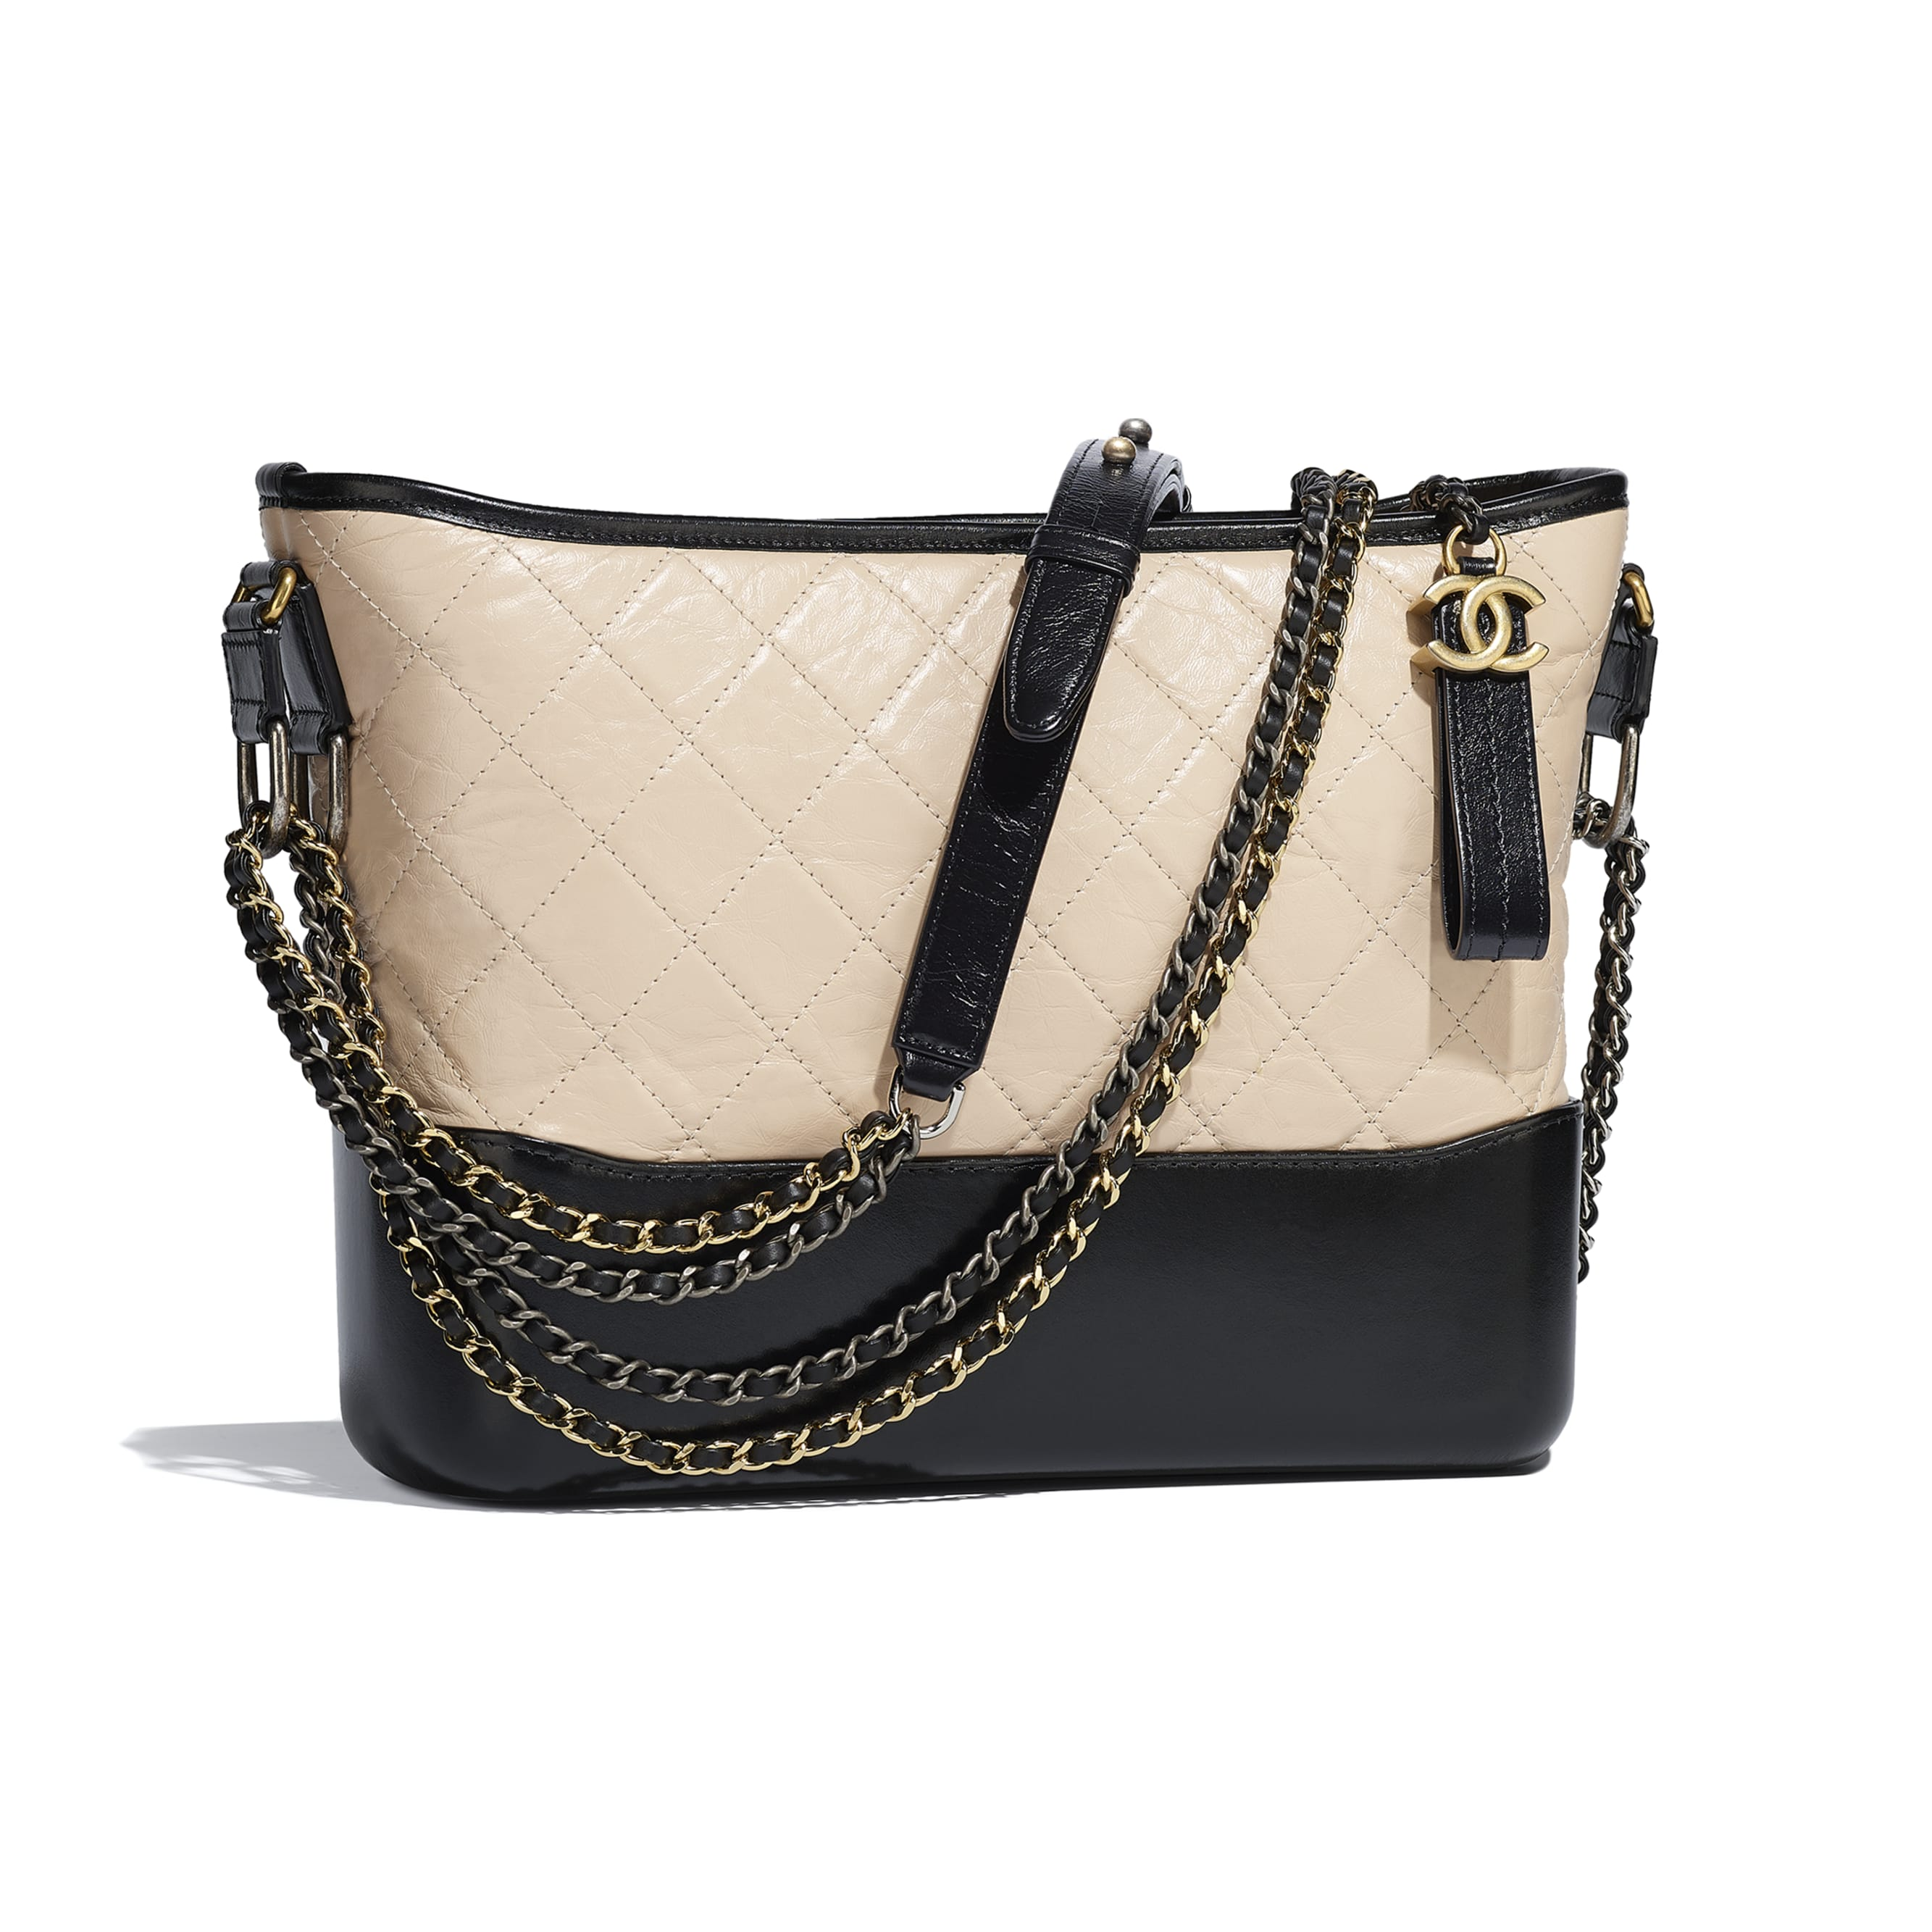 CHANEL'S GABRIELLE Large Hobo Bag - Beige & Black - Aged Calfskin, Smooth Calfskin, Gold-Tone, Silver-Tone & Ruthenium-Finish Metal - CHANEL - Other view - see standard sized version